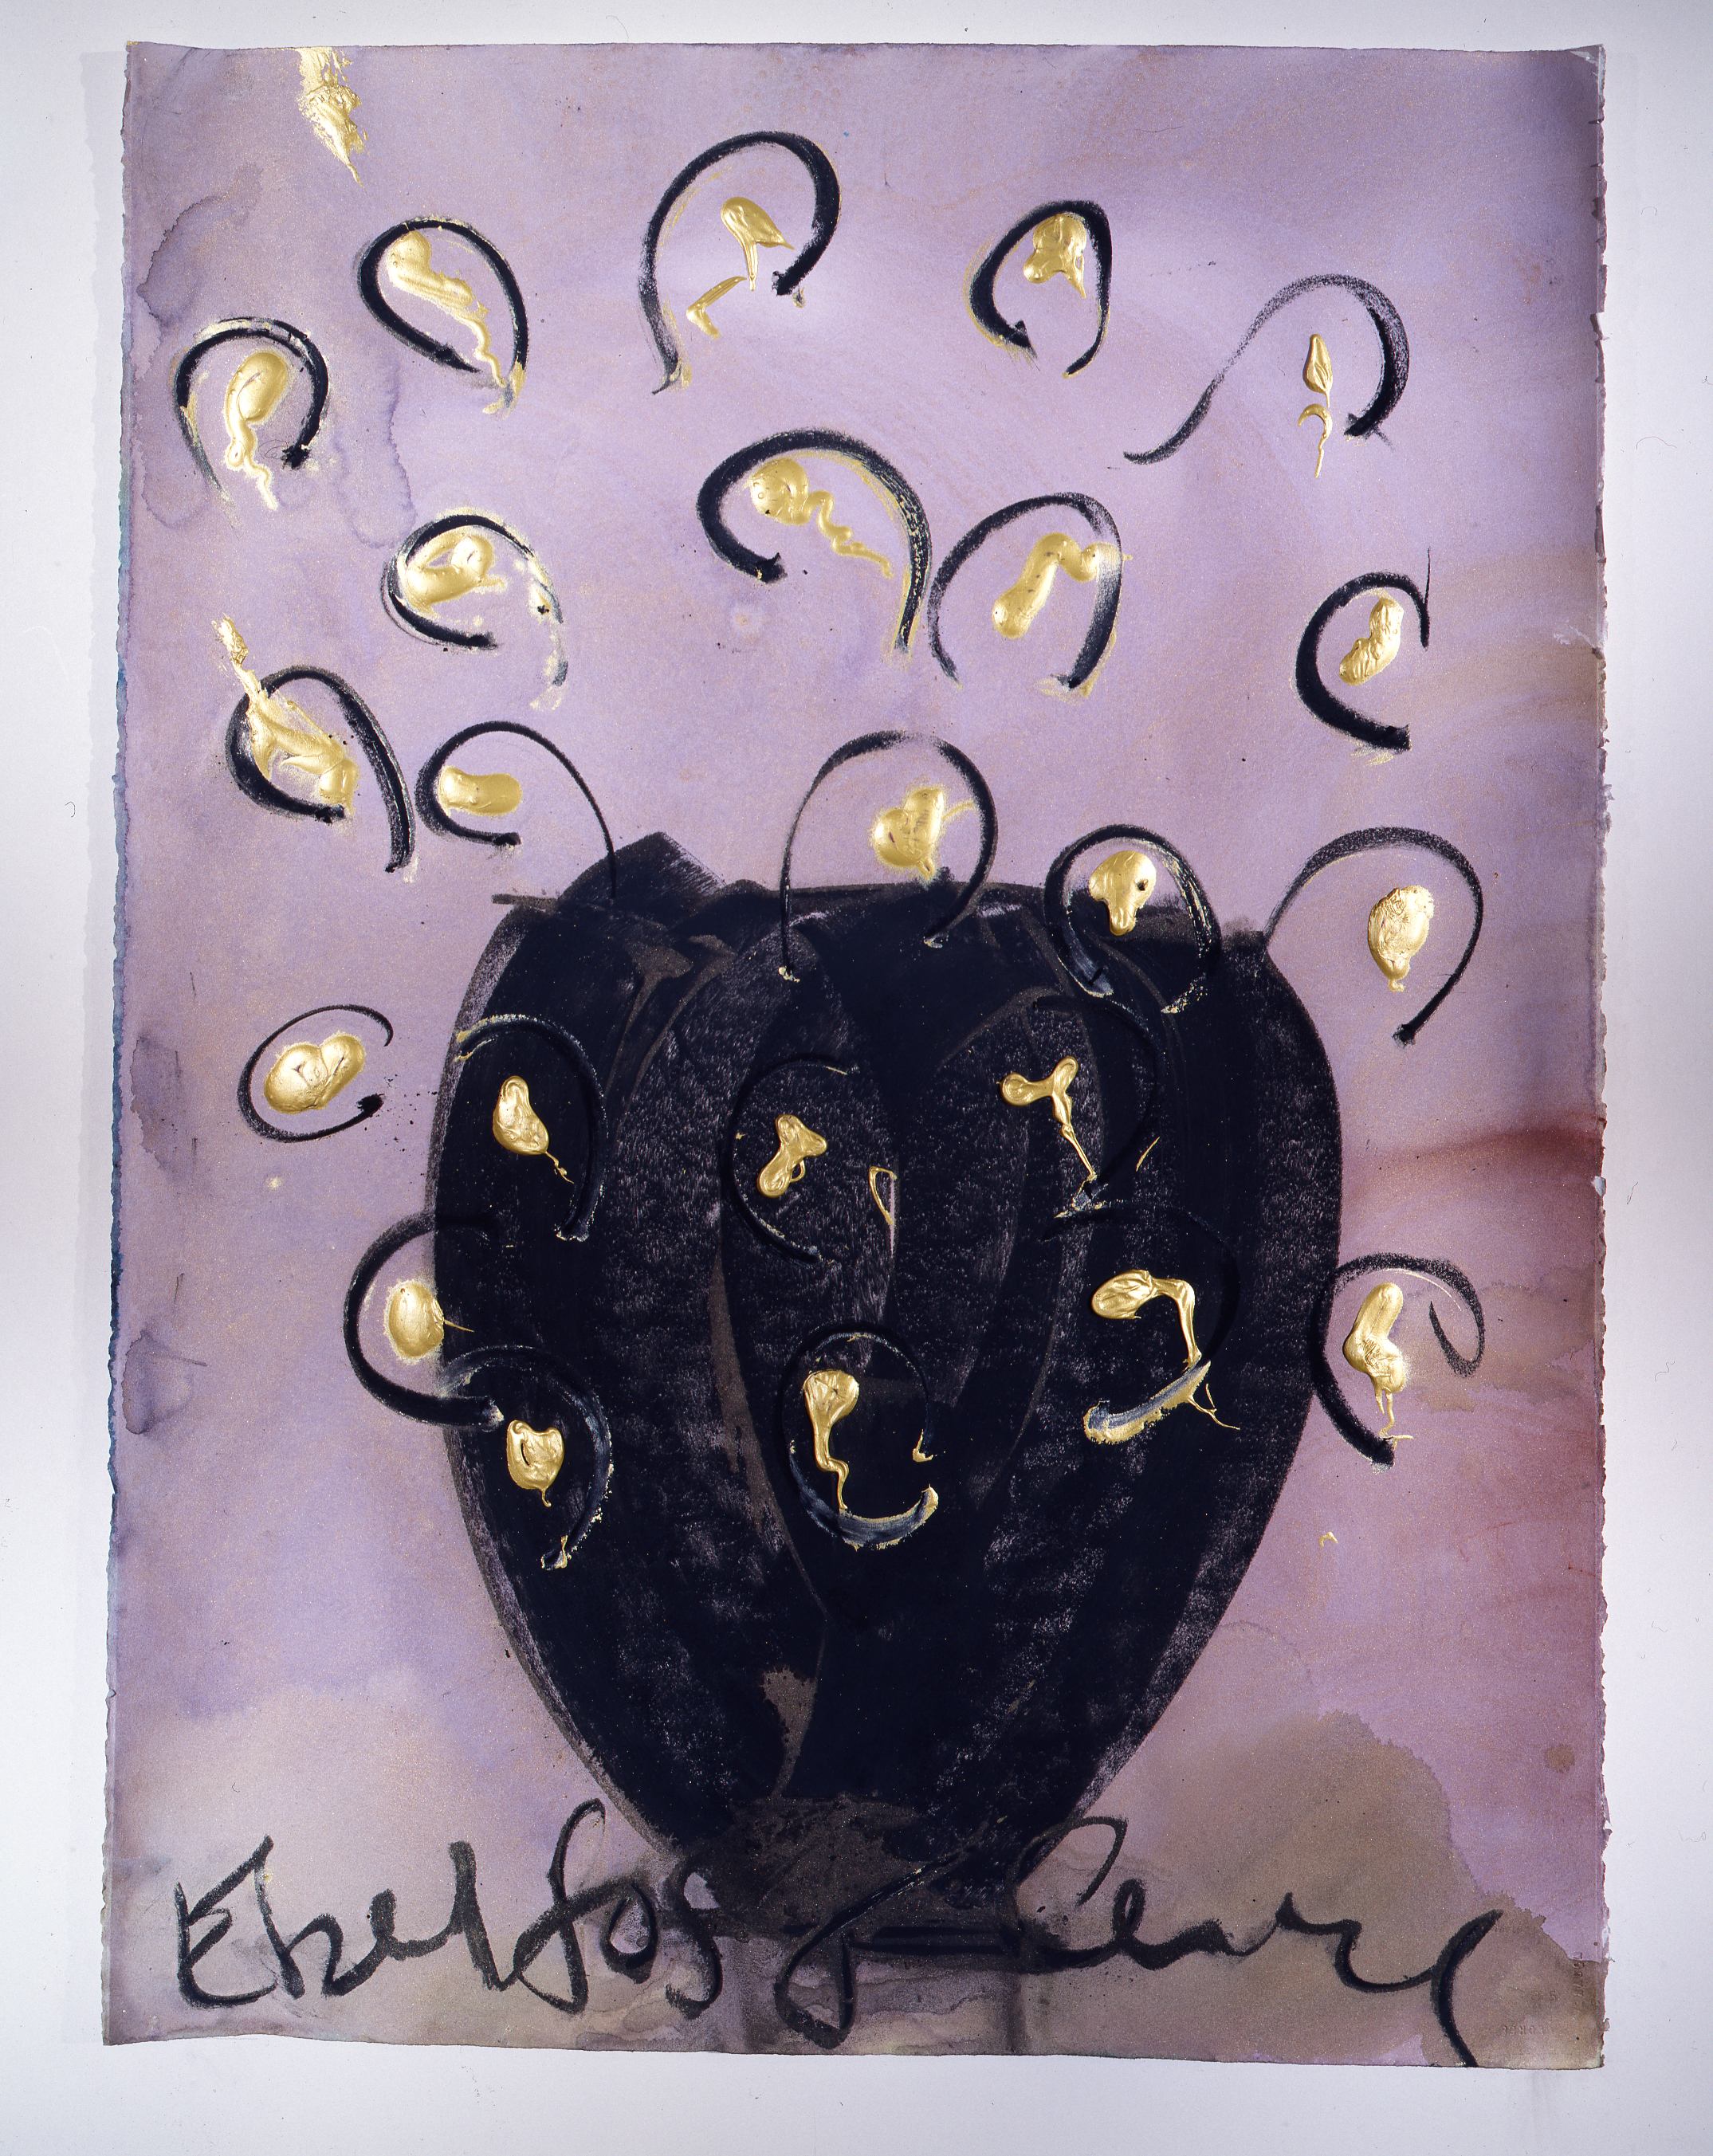 Dale Chihuly, Ebeltoft Drawing, (1991, mixed media on paper, 30 x 22 inches), DC.360